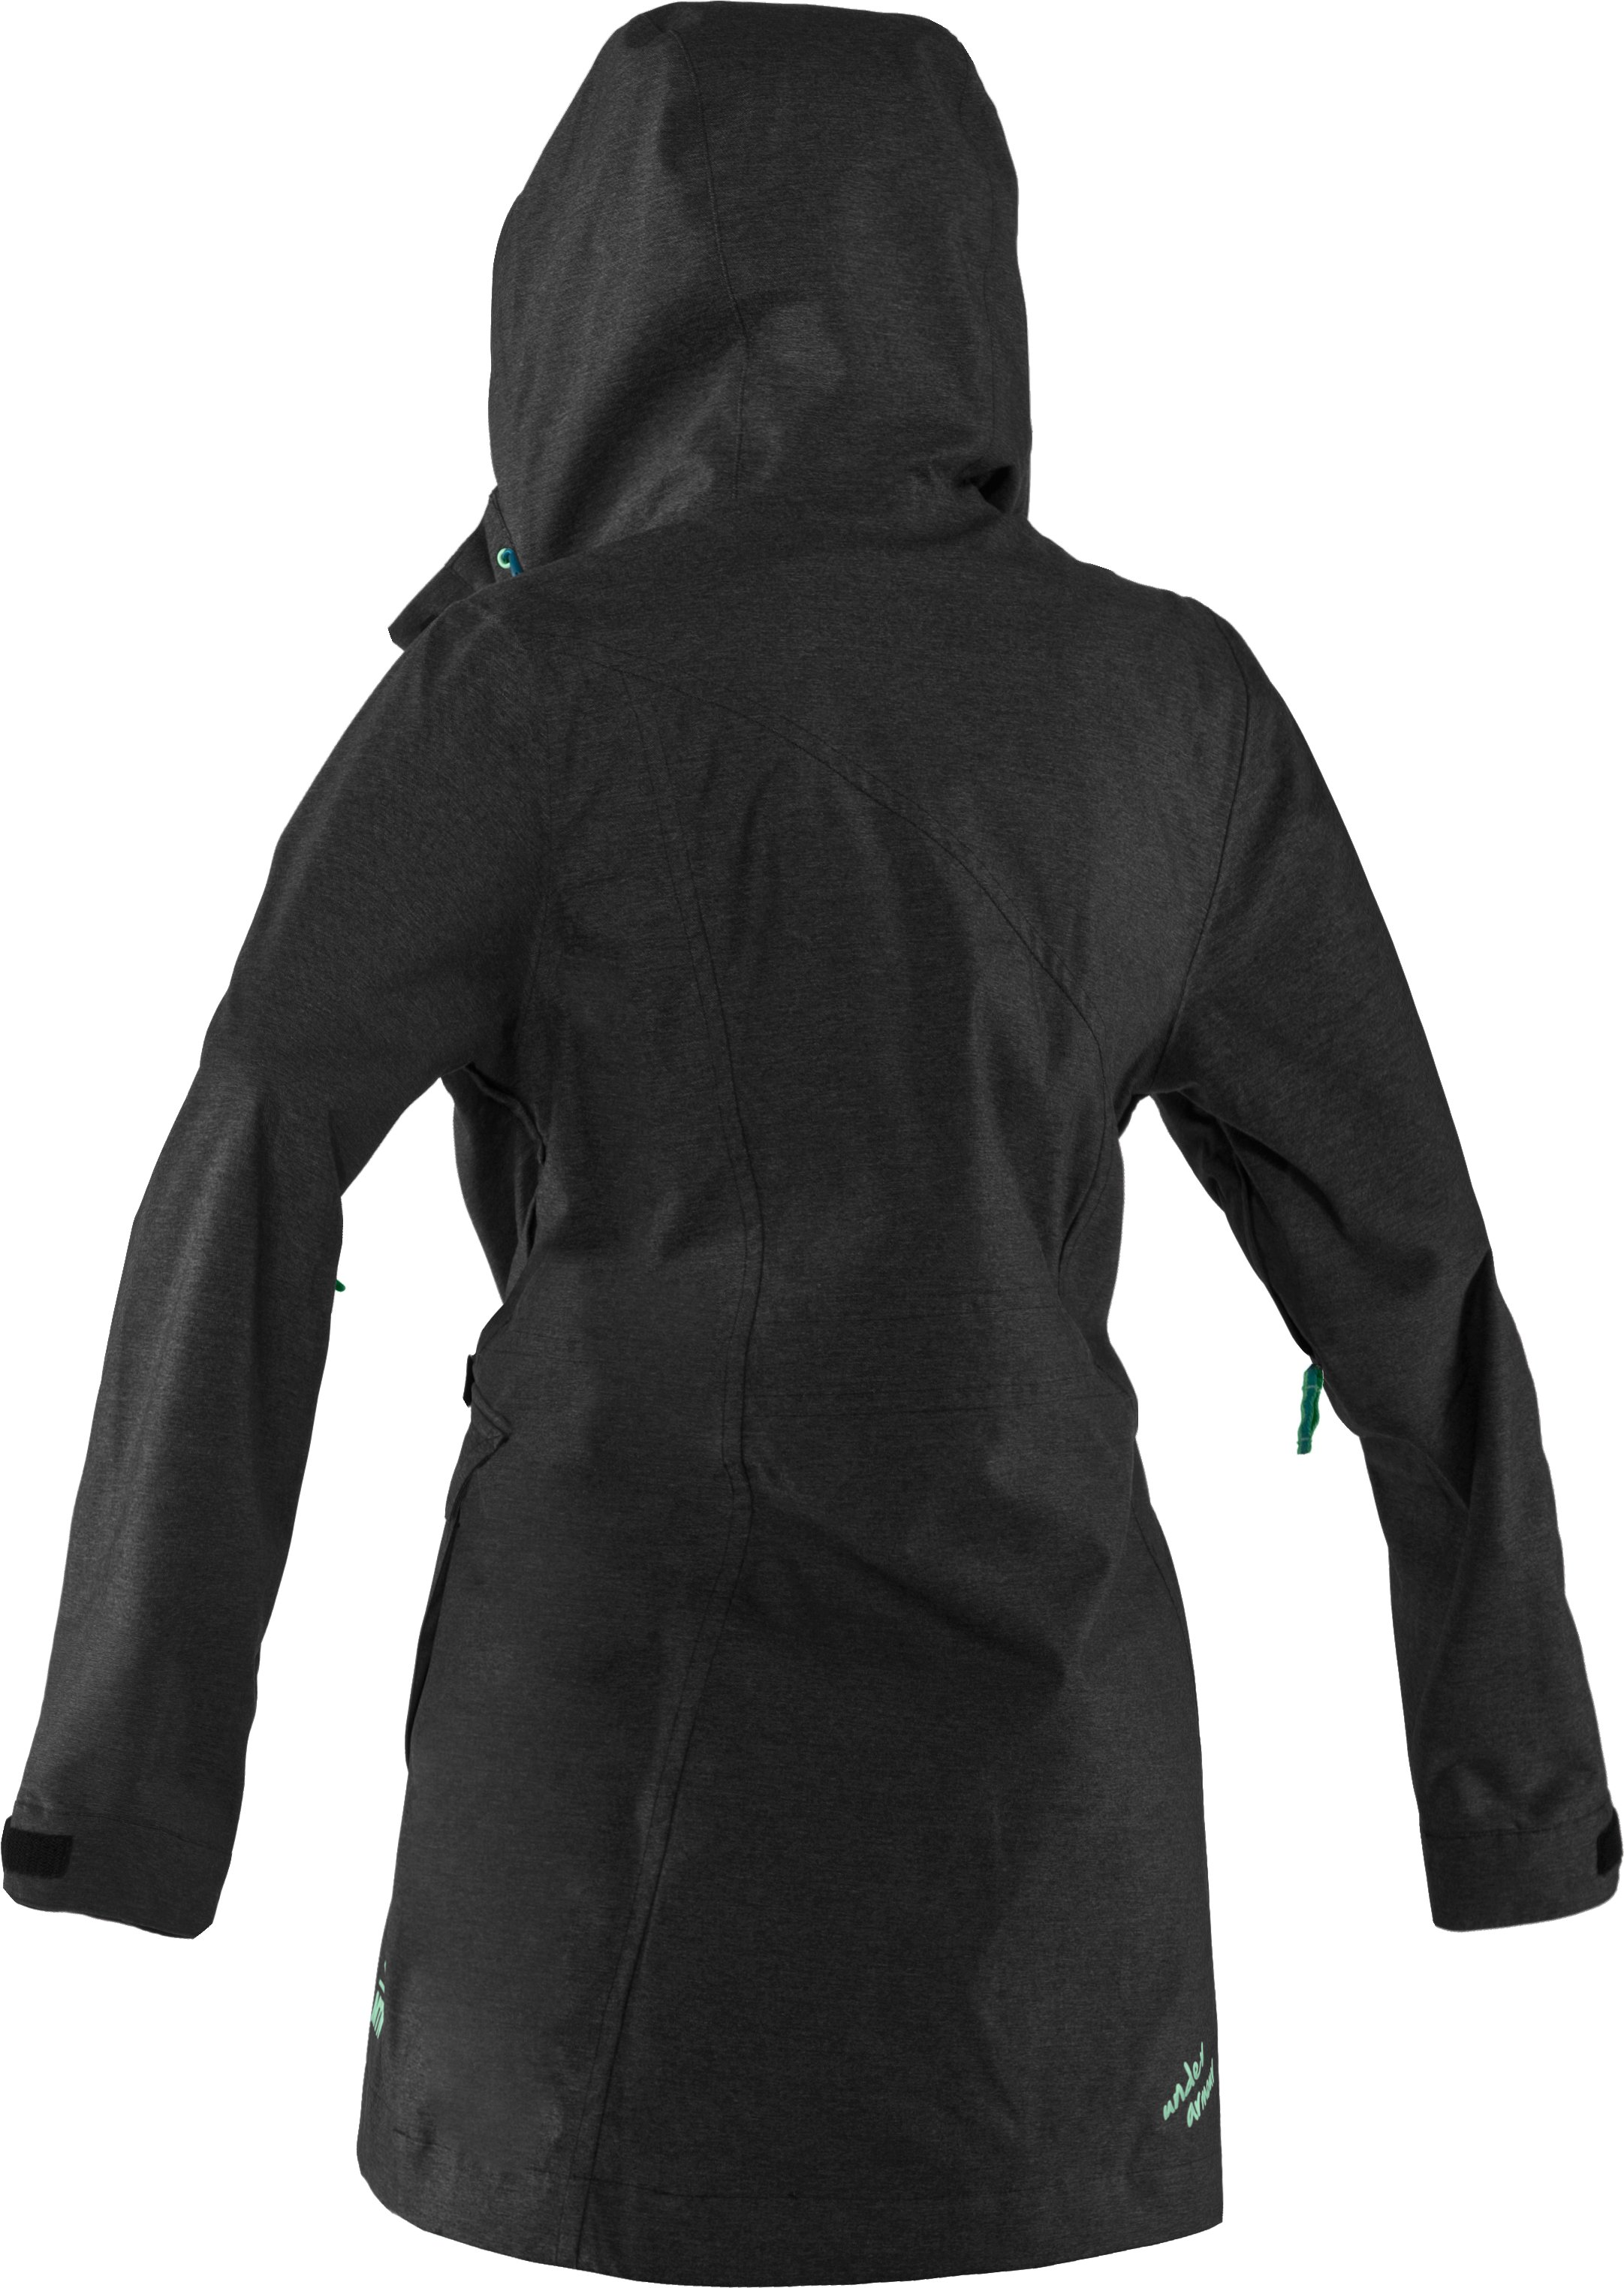 Women's After Forever Shell Jacket, Black , undefined